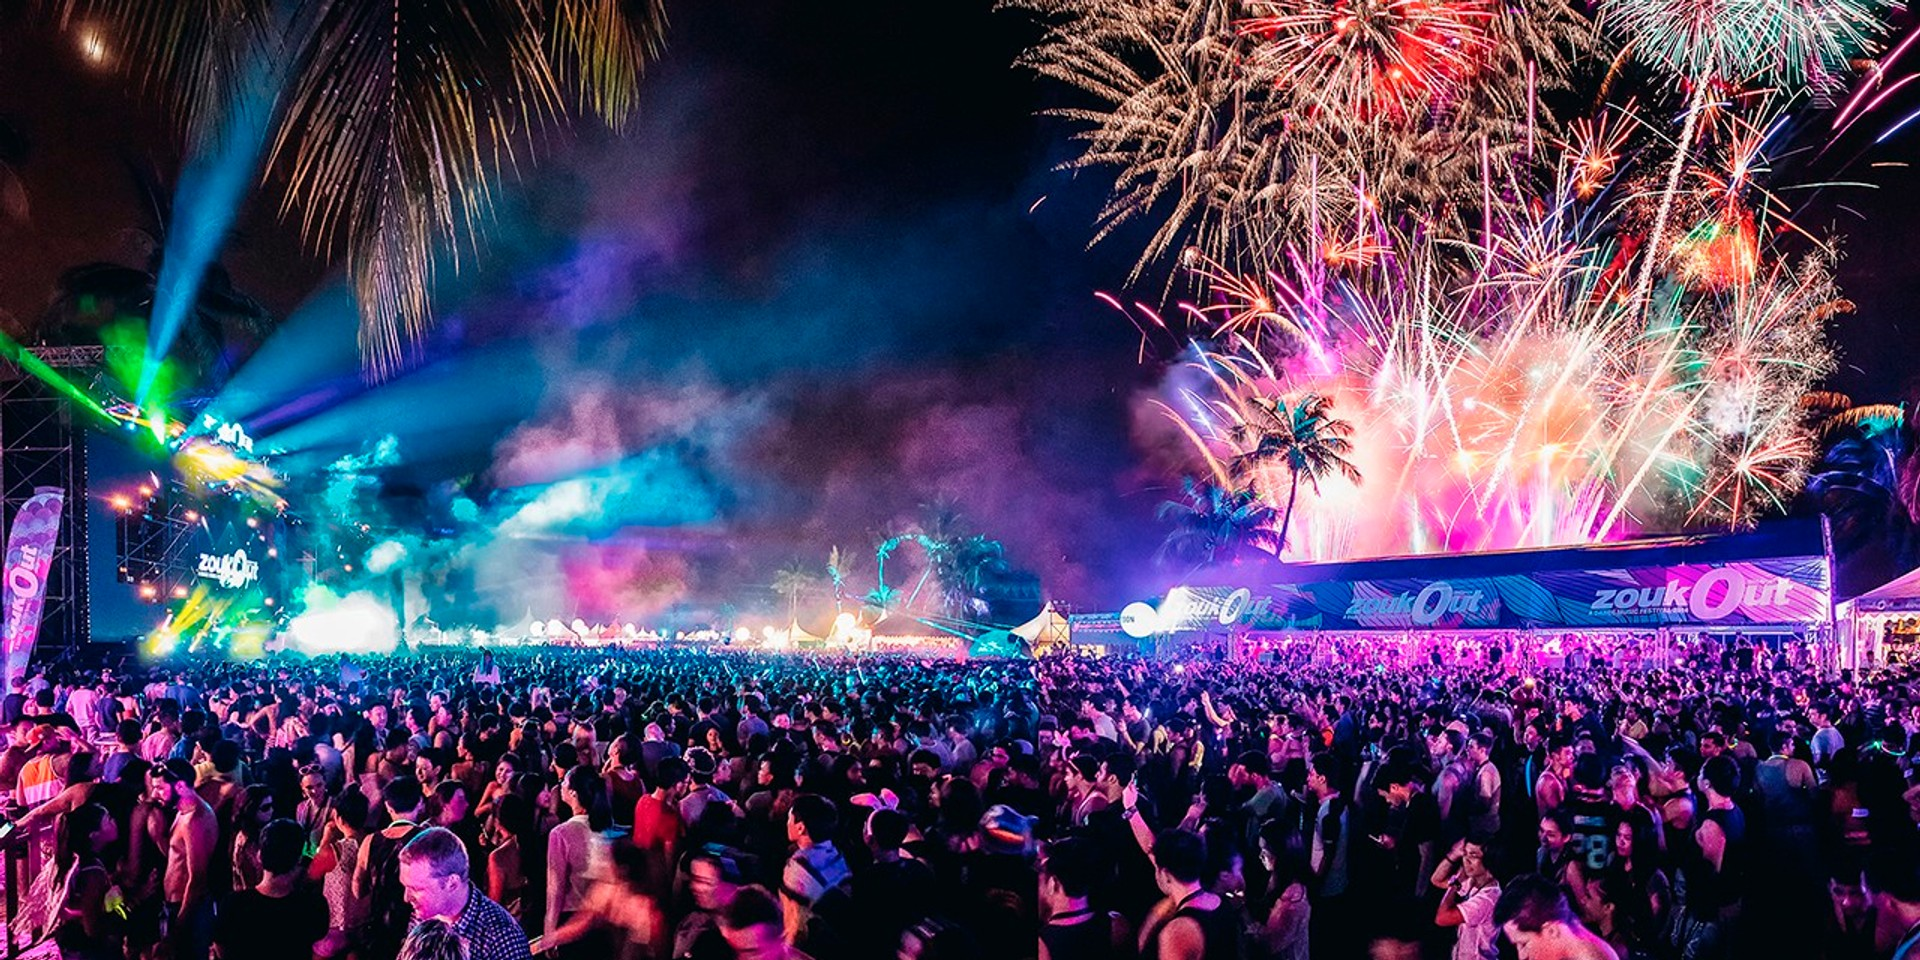 ZoukOut to co-host Beach stage at Japan's Summer Sonic 2016